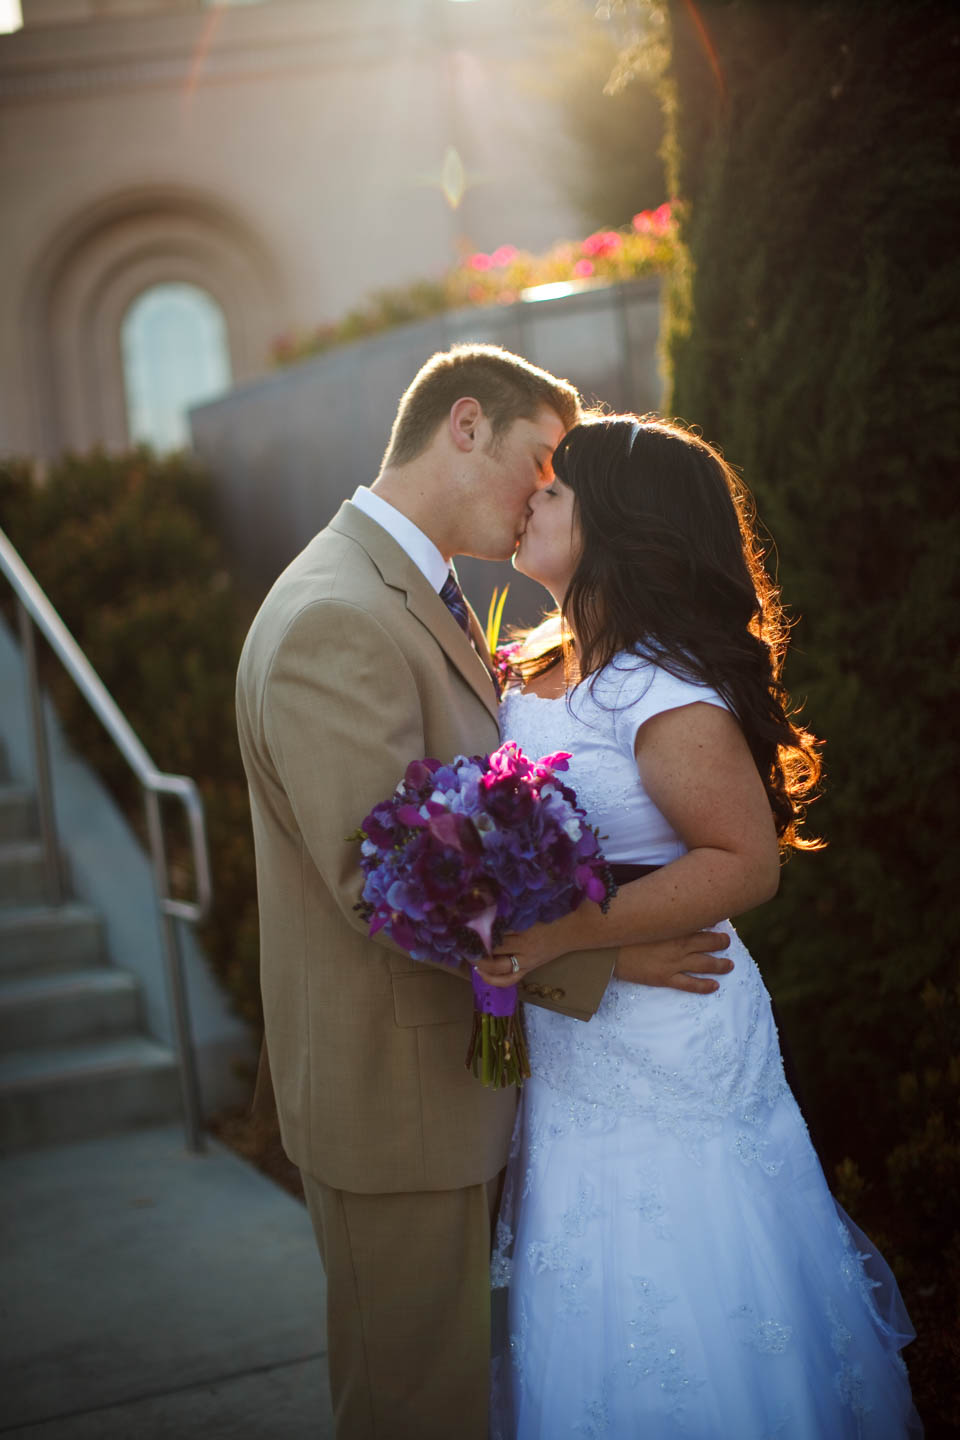 Bride and groom kiss after the portrait session